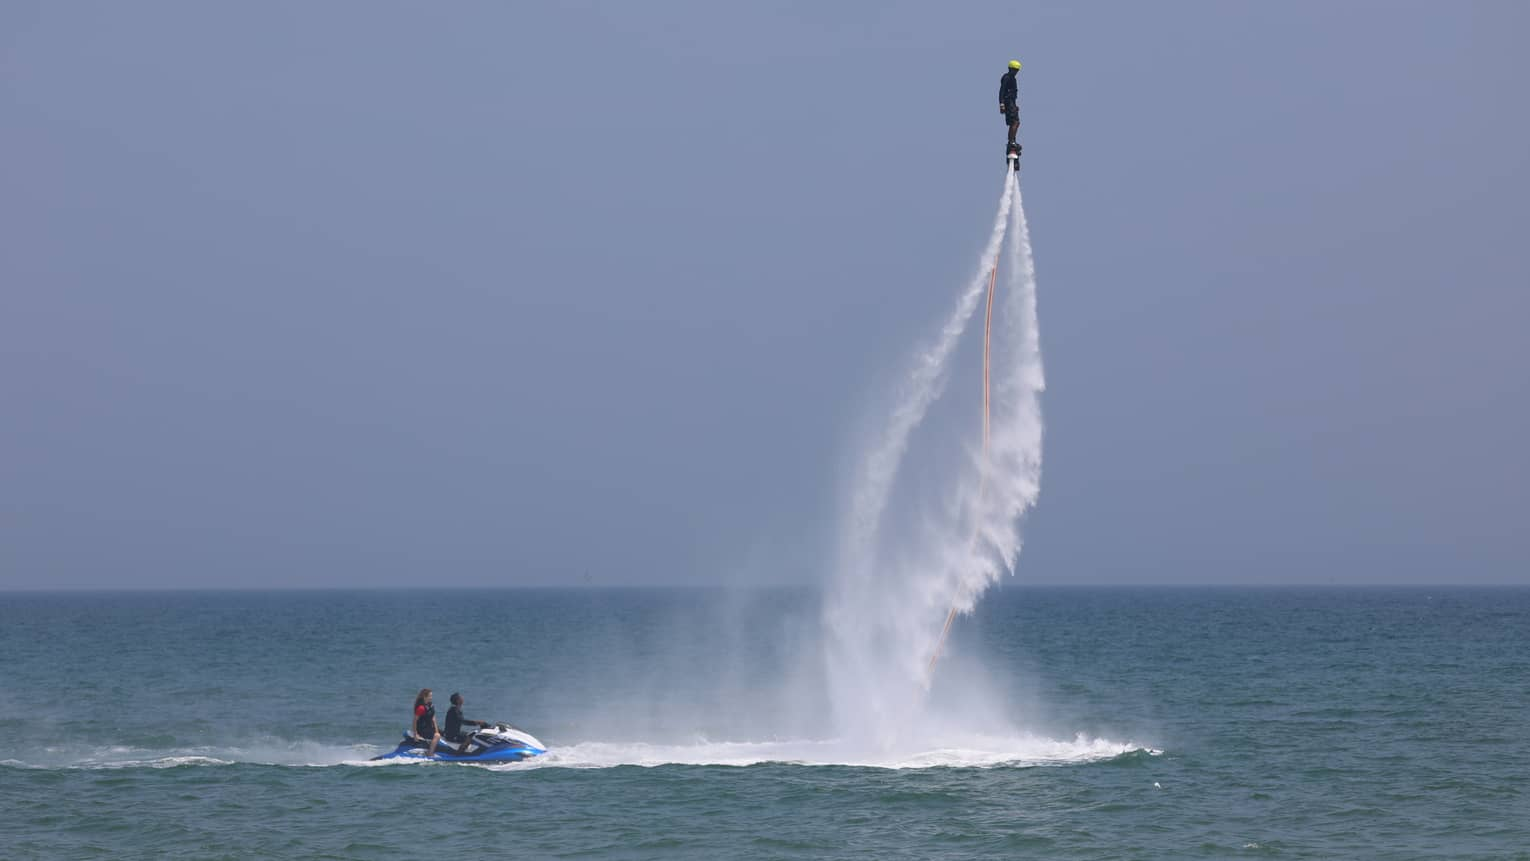 Person in extreme jet-pack with water trails, high above ocean, two jet skiers